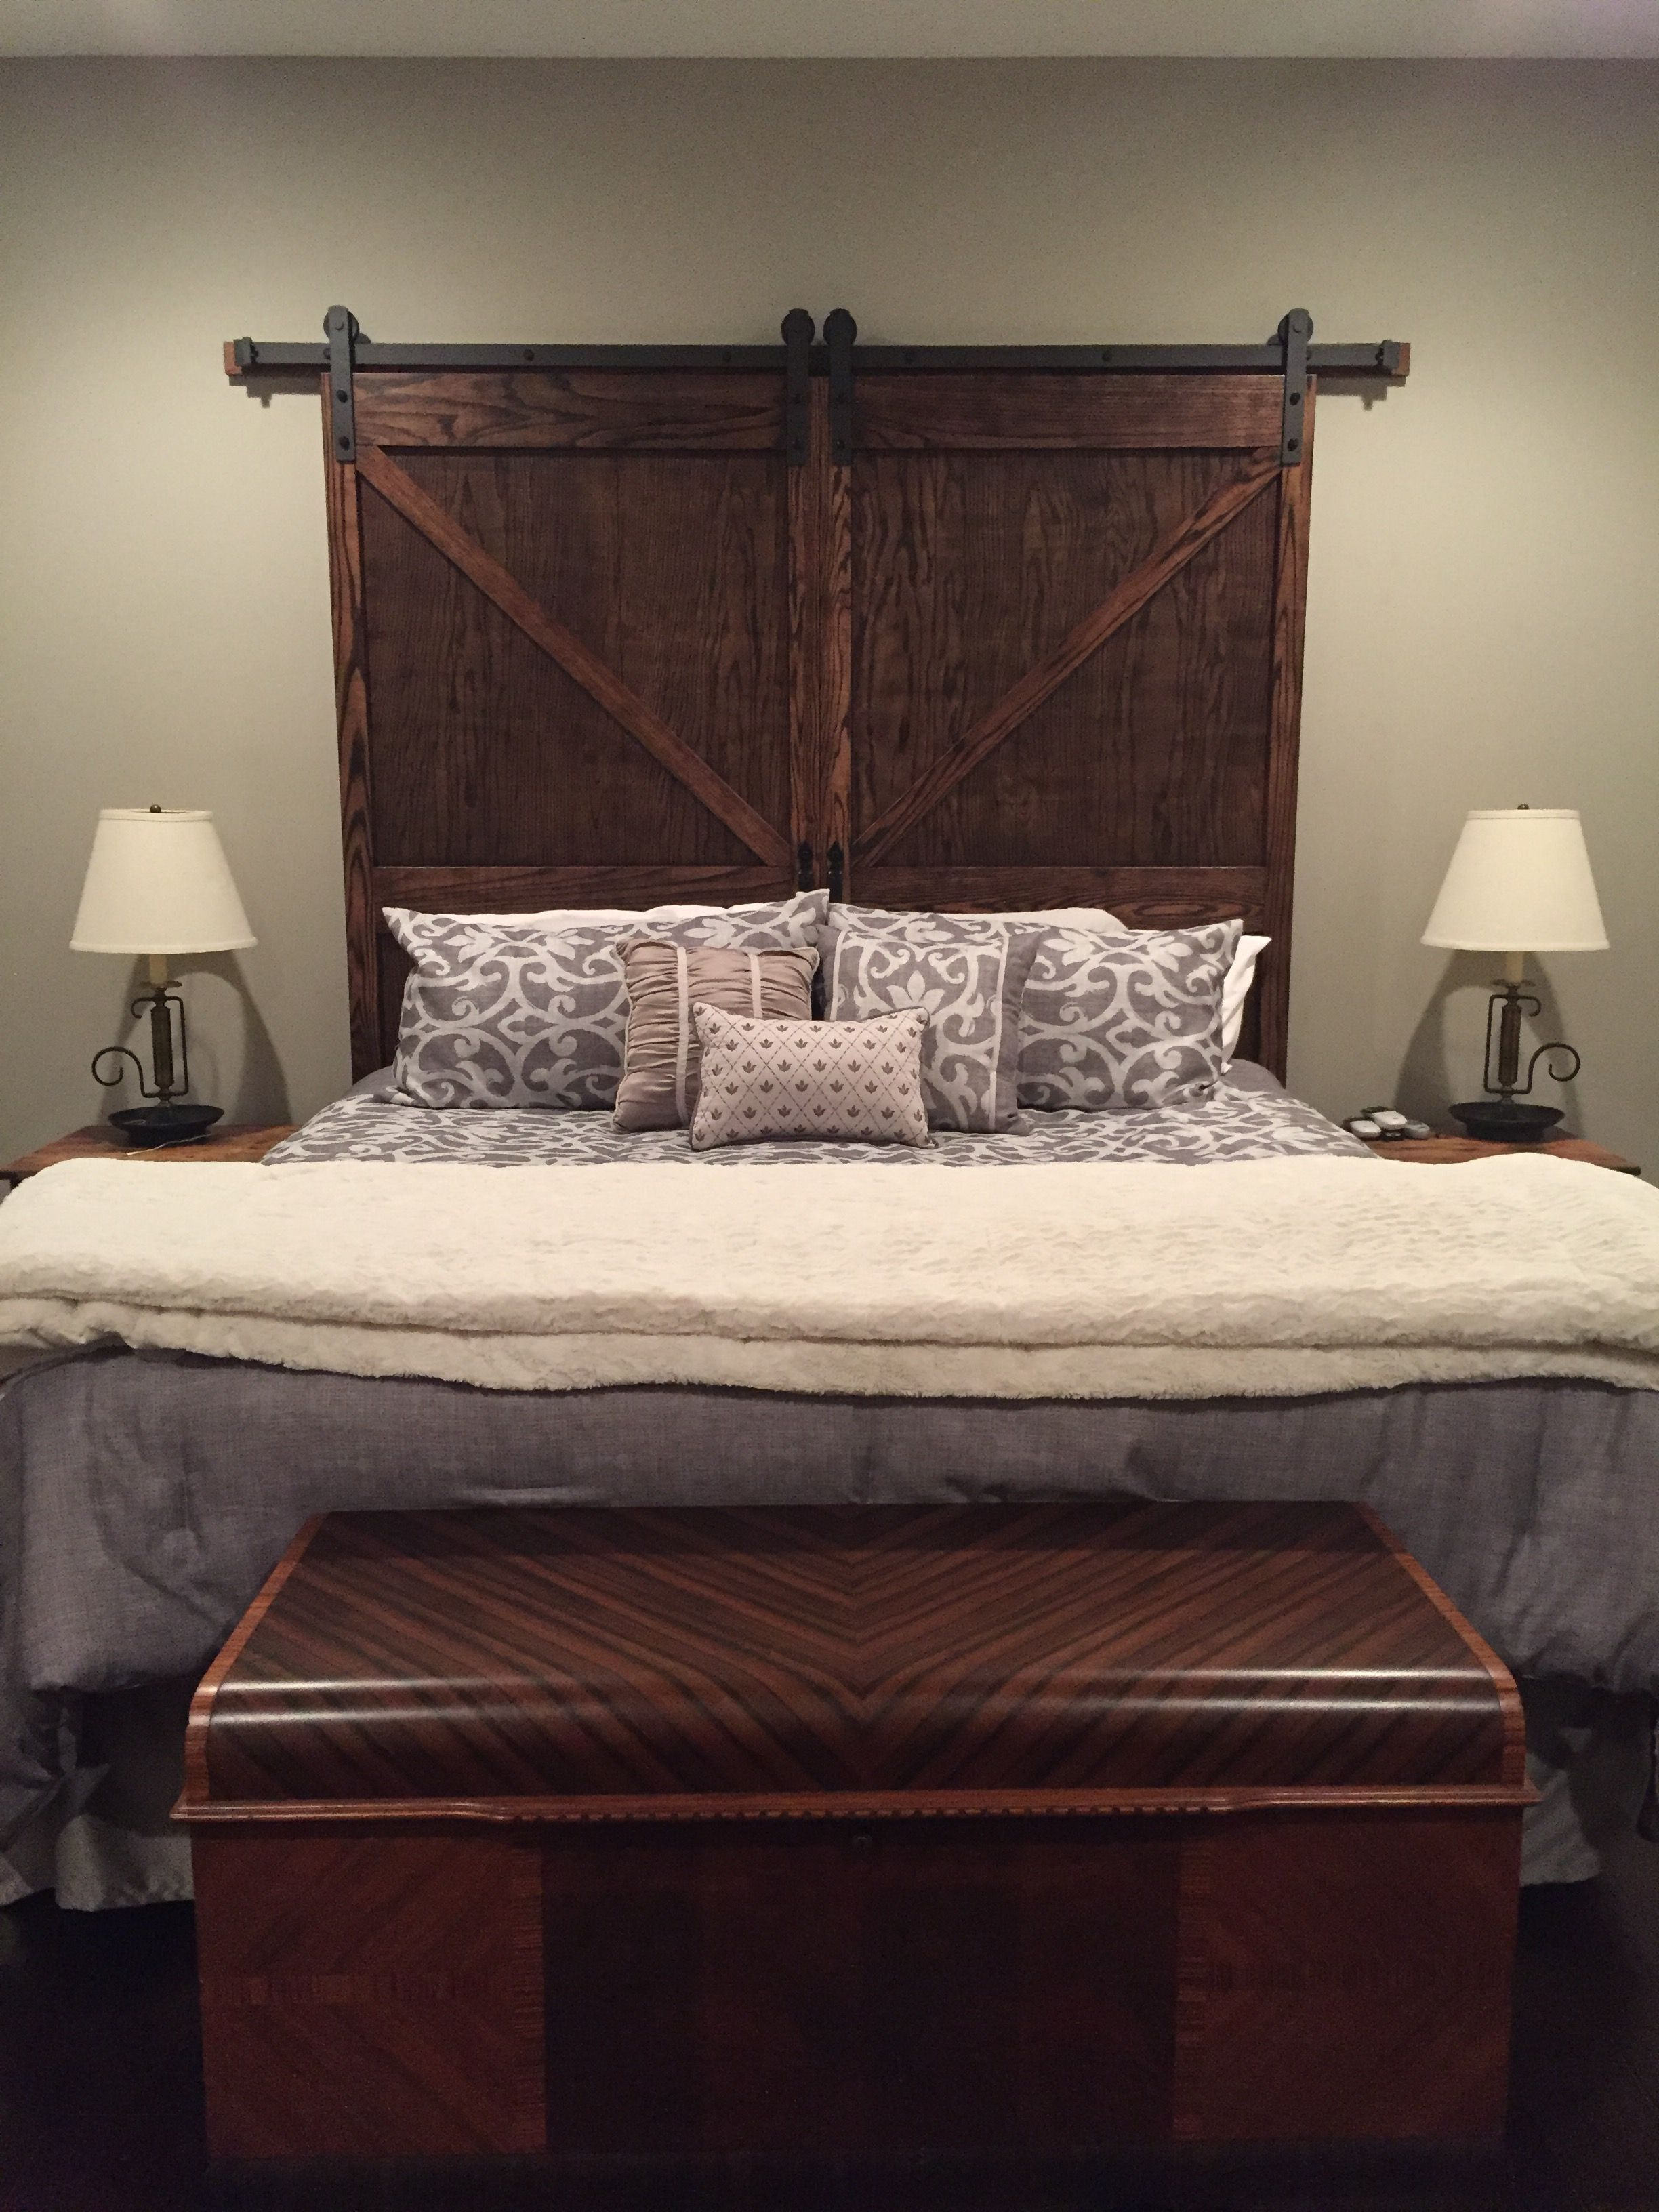 King Size Barn Door Headboard With Hardware Headboarddiy